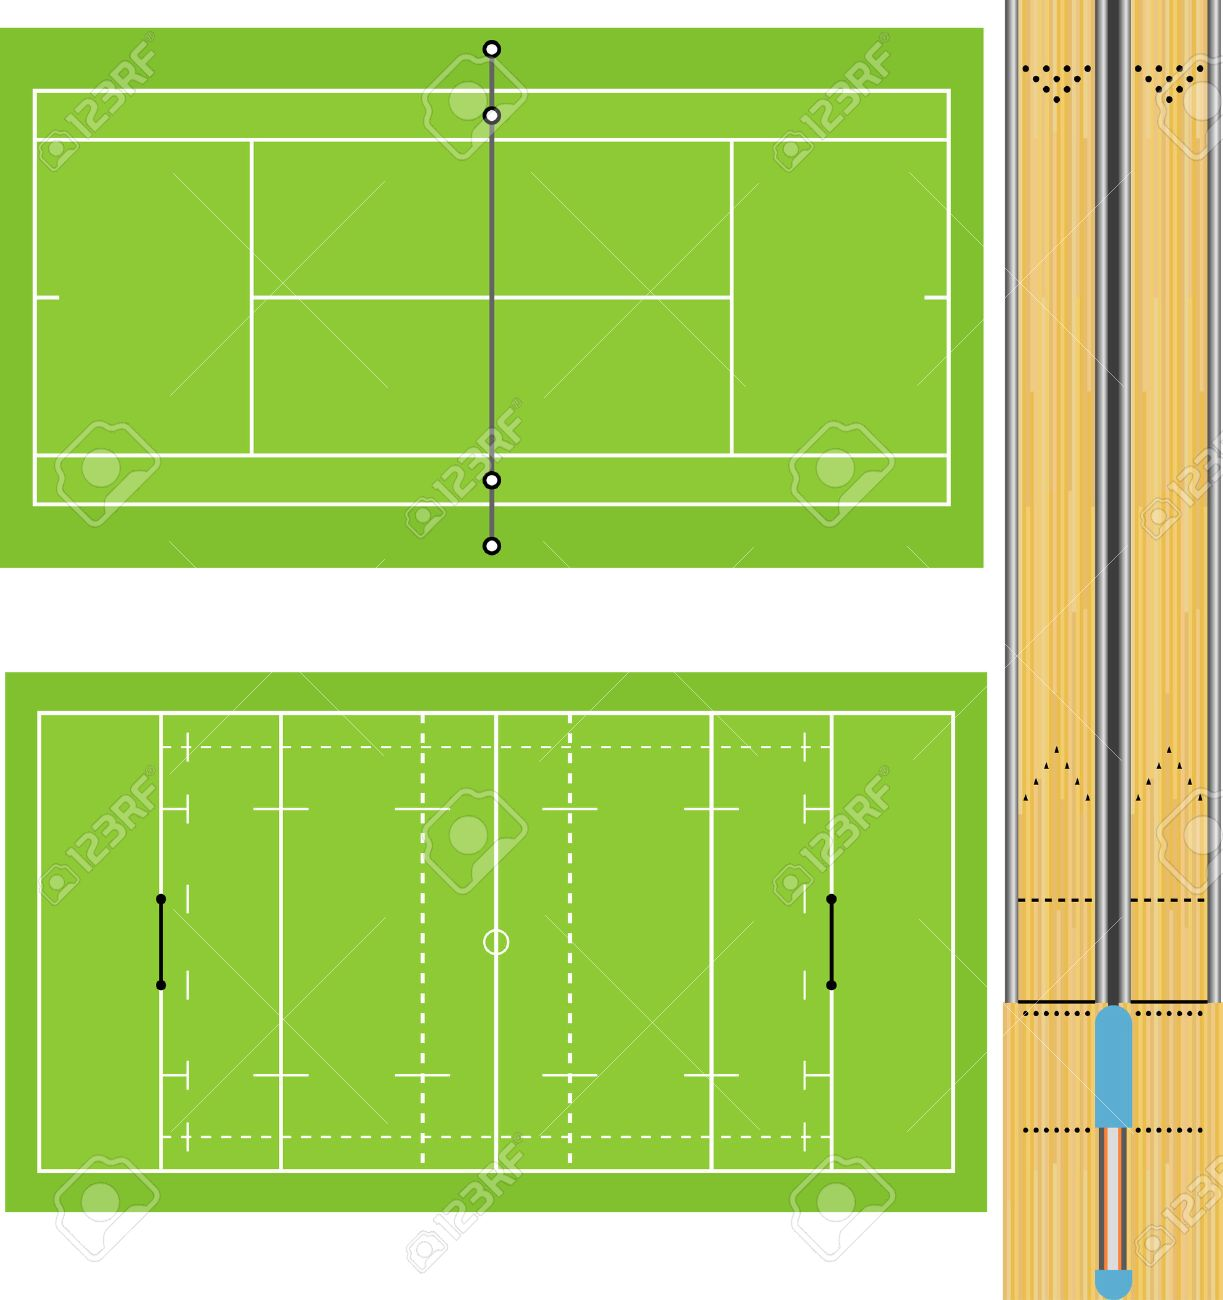 hight resolution of illustration of tennis court rugby field and ten pin bowling lanes accurately proportioned